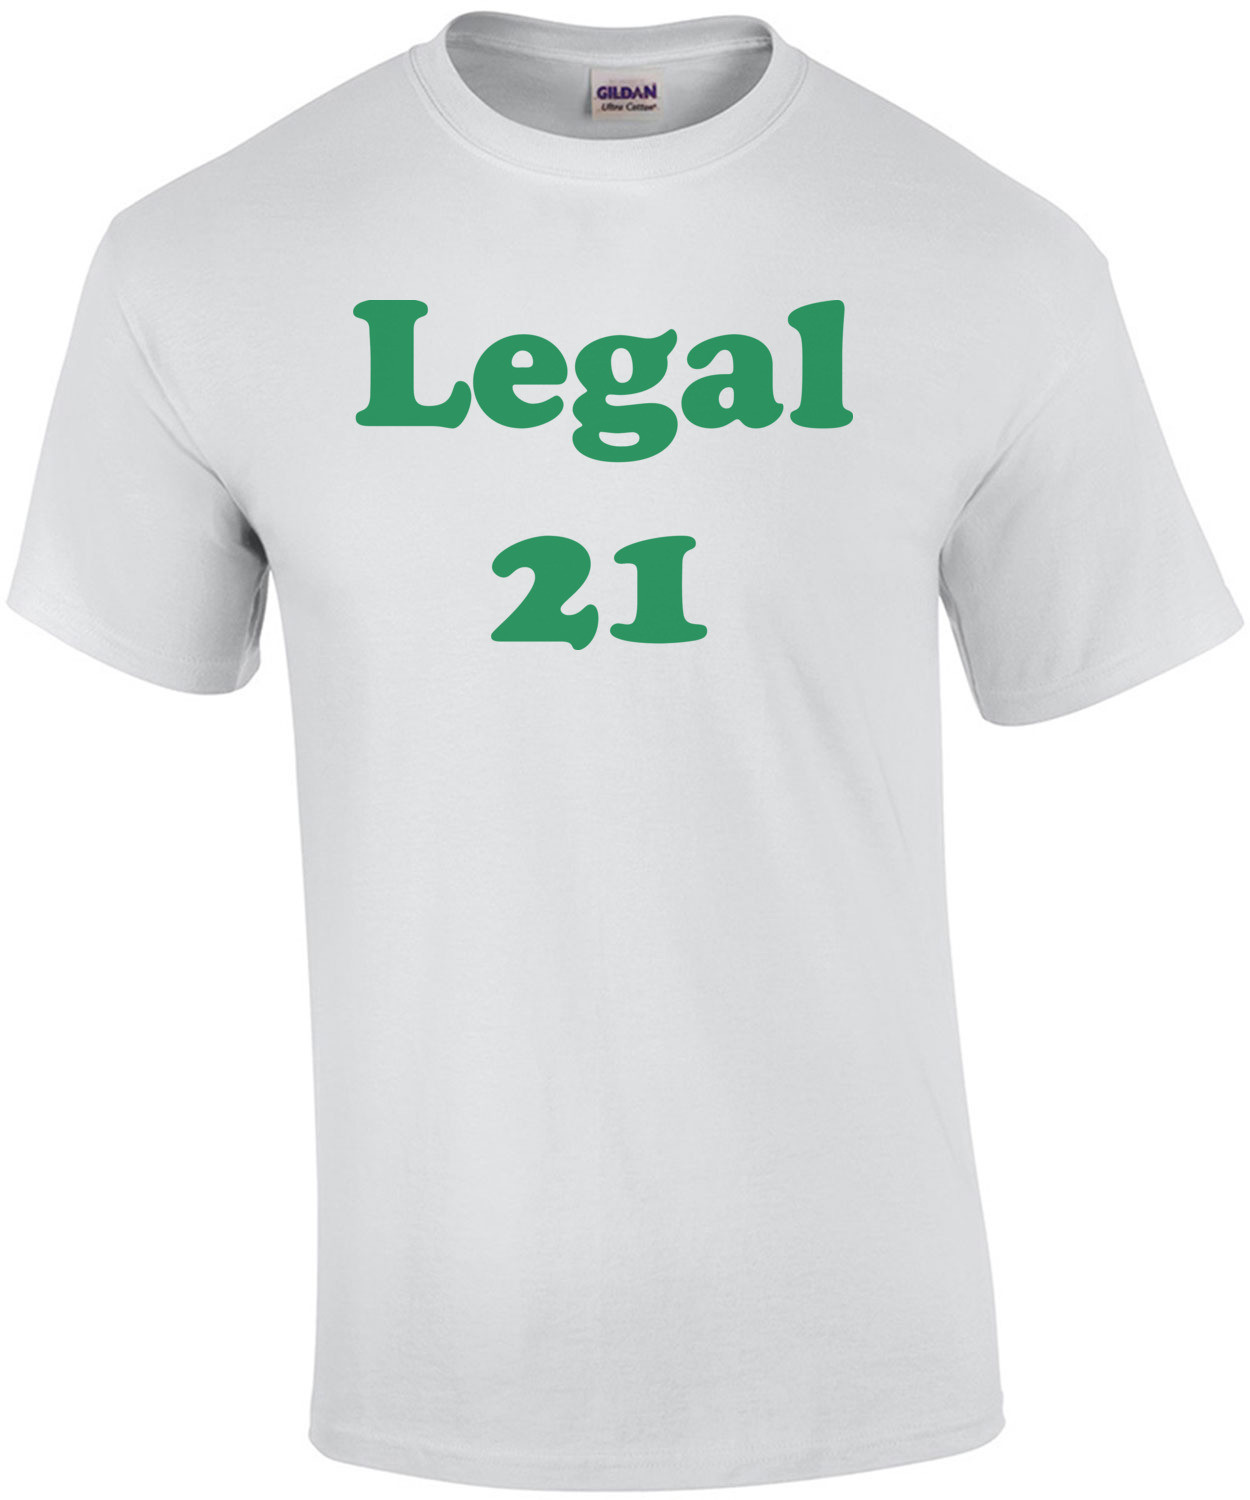 Legal 21 - 21 birthday Shirt